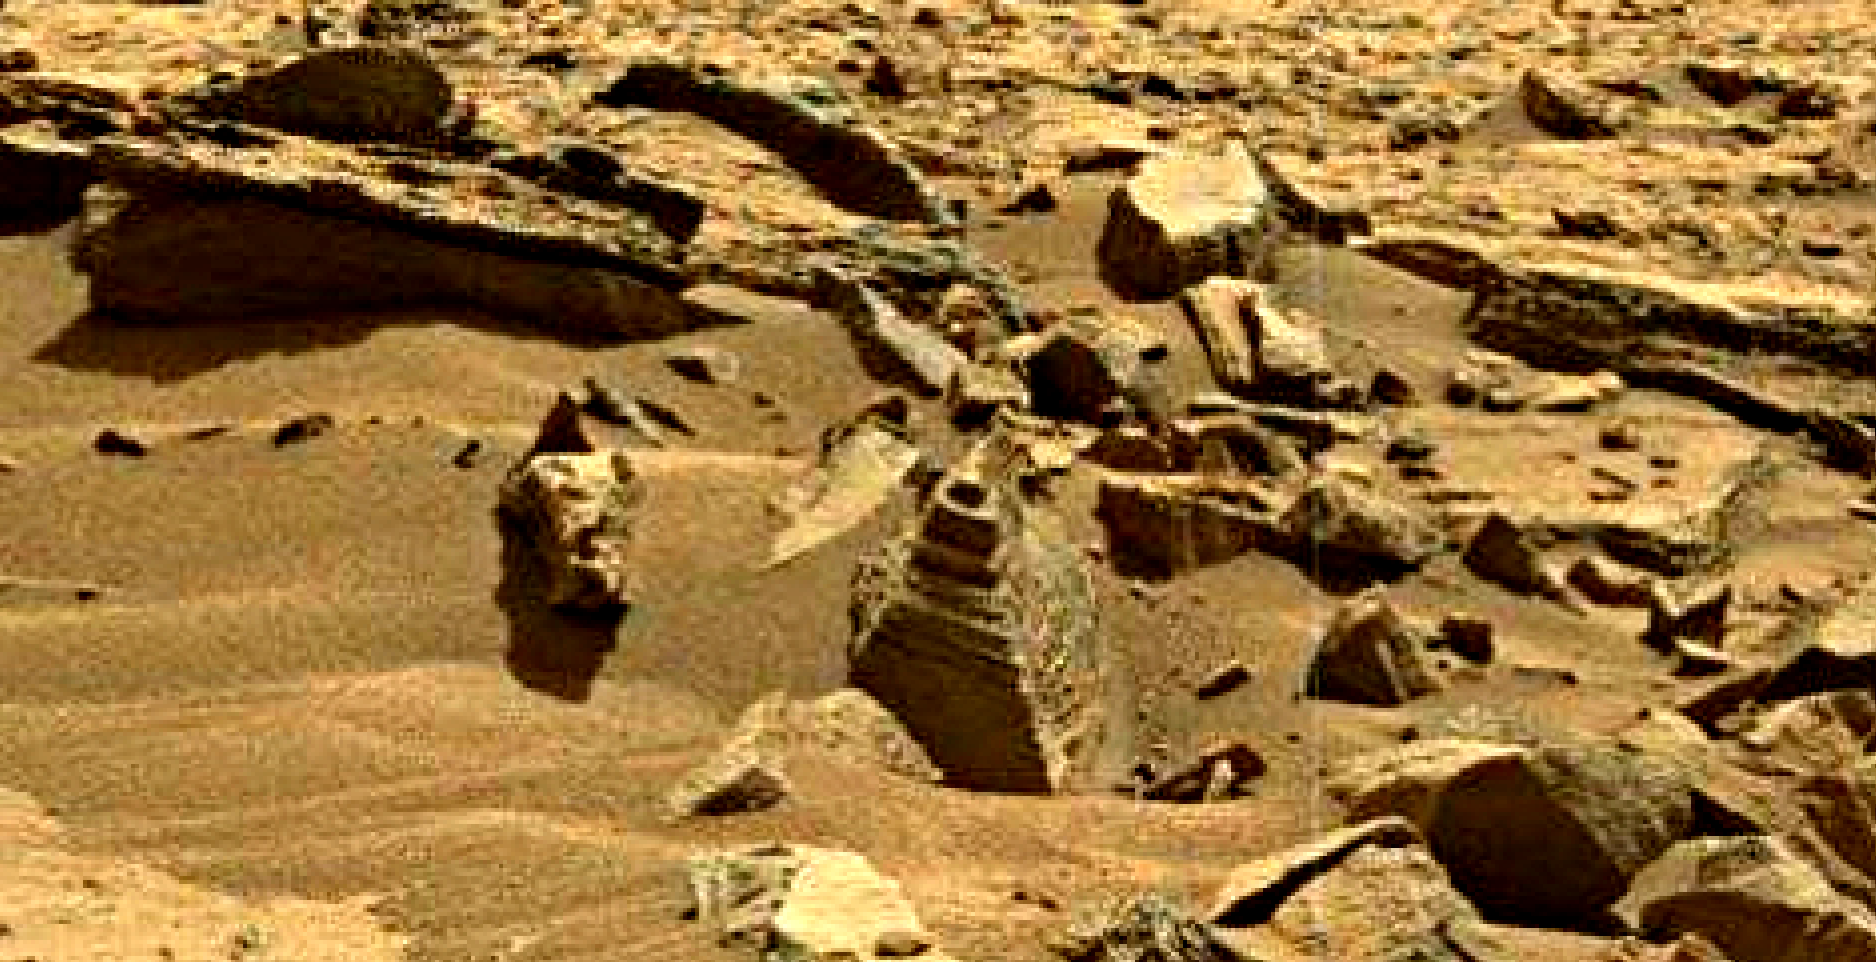 mars sol 1373 anomaly-artifacts 1 was life on mars